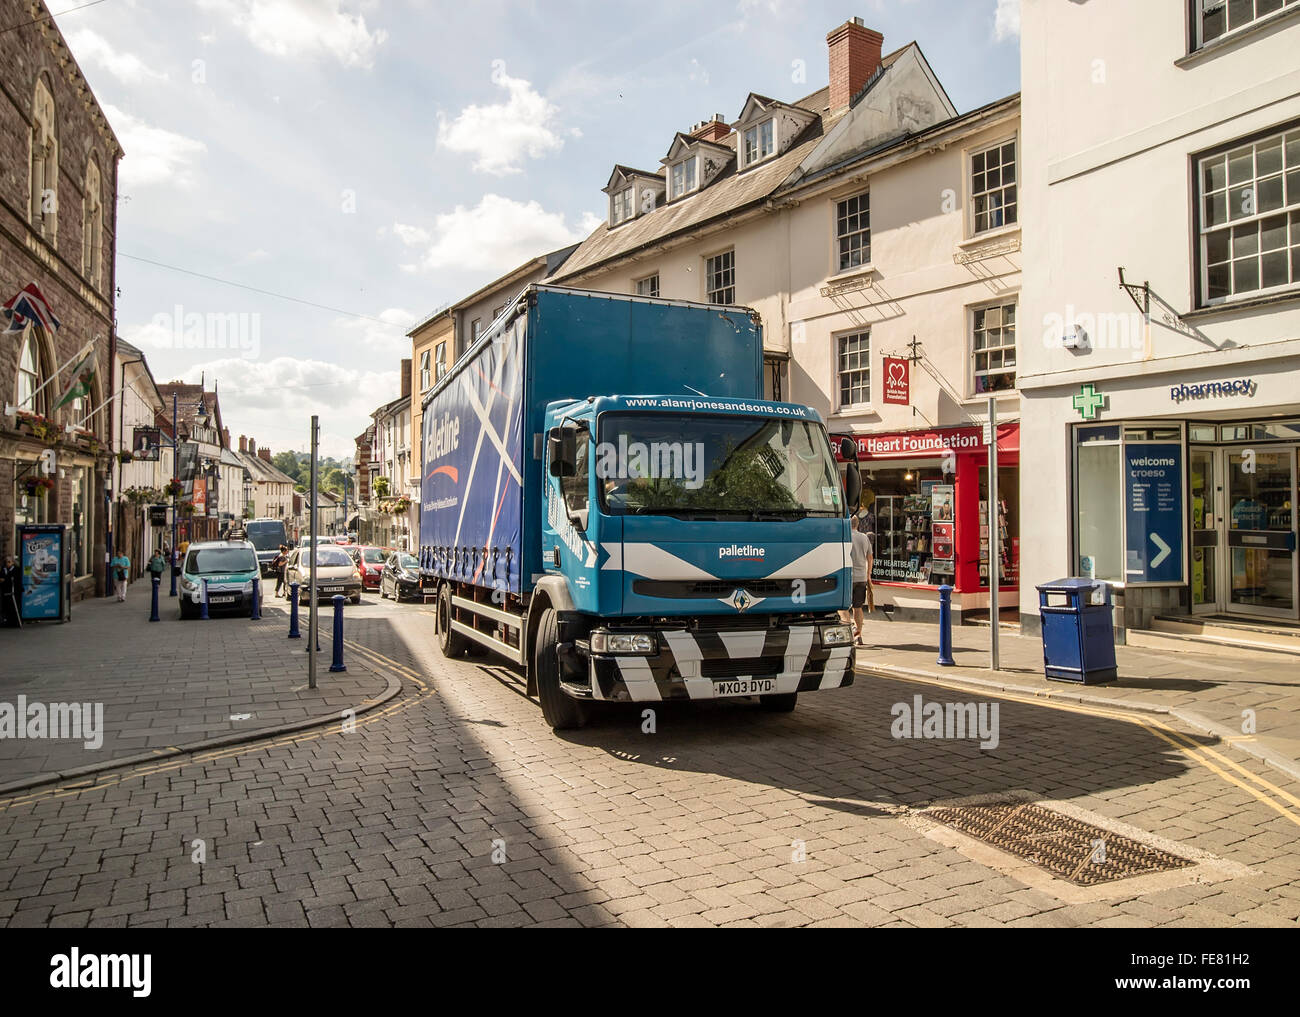 Lorry in town high street, Abergavenny, Wales, UK Stock Photo